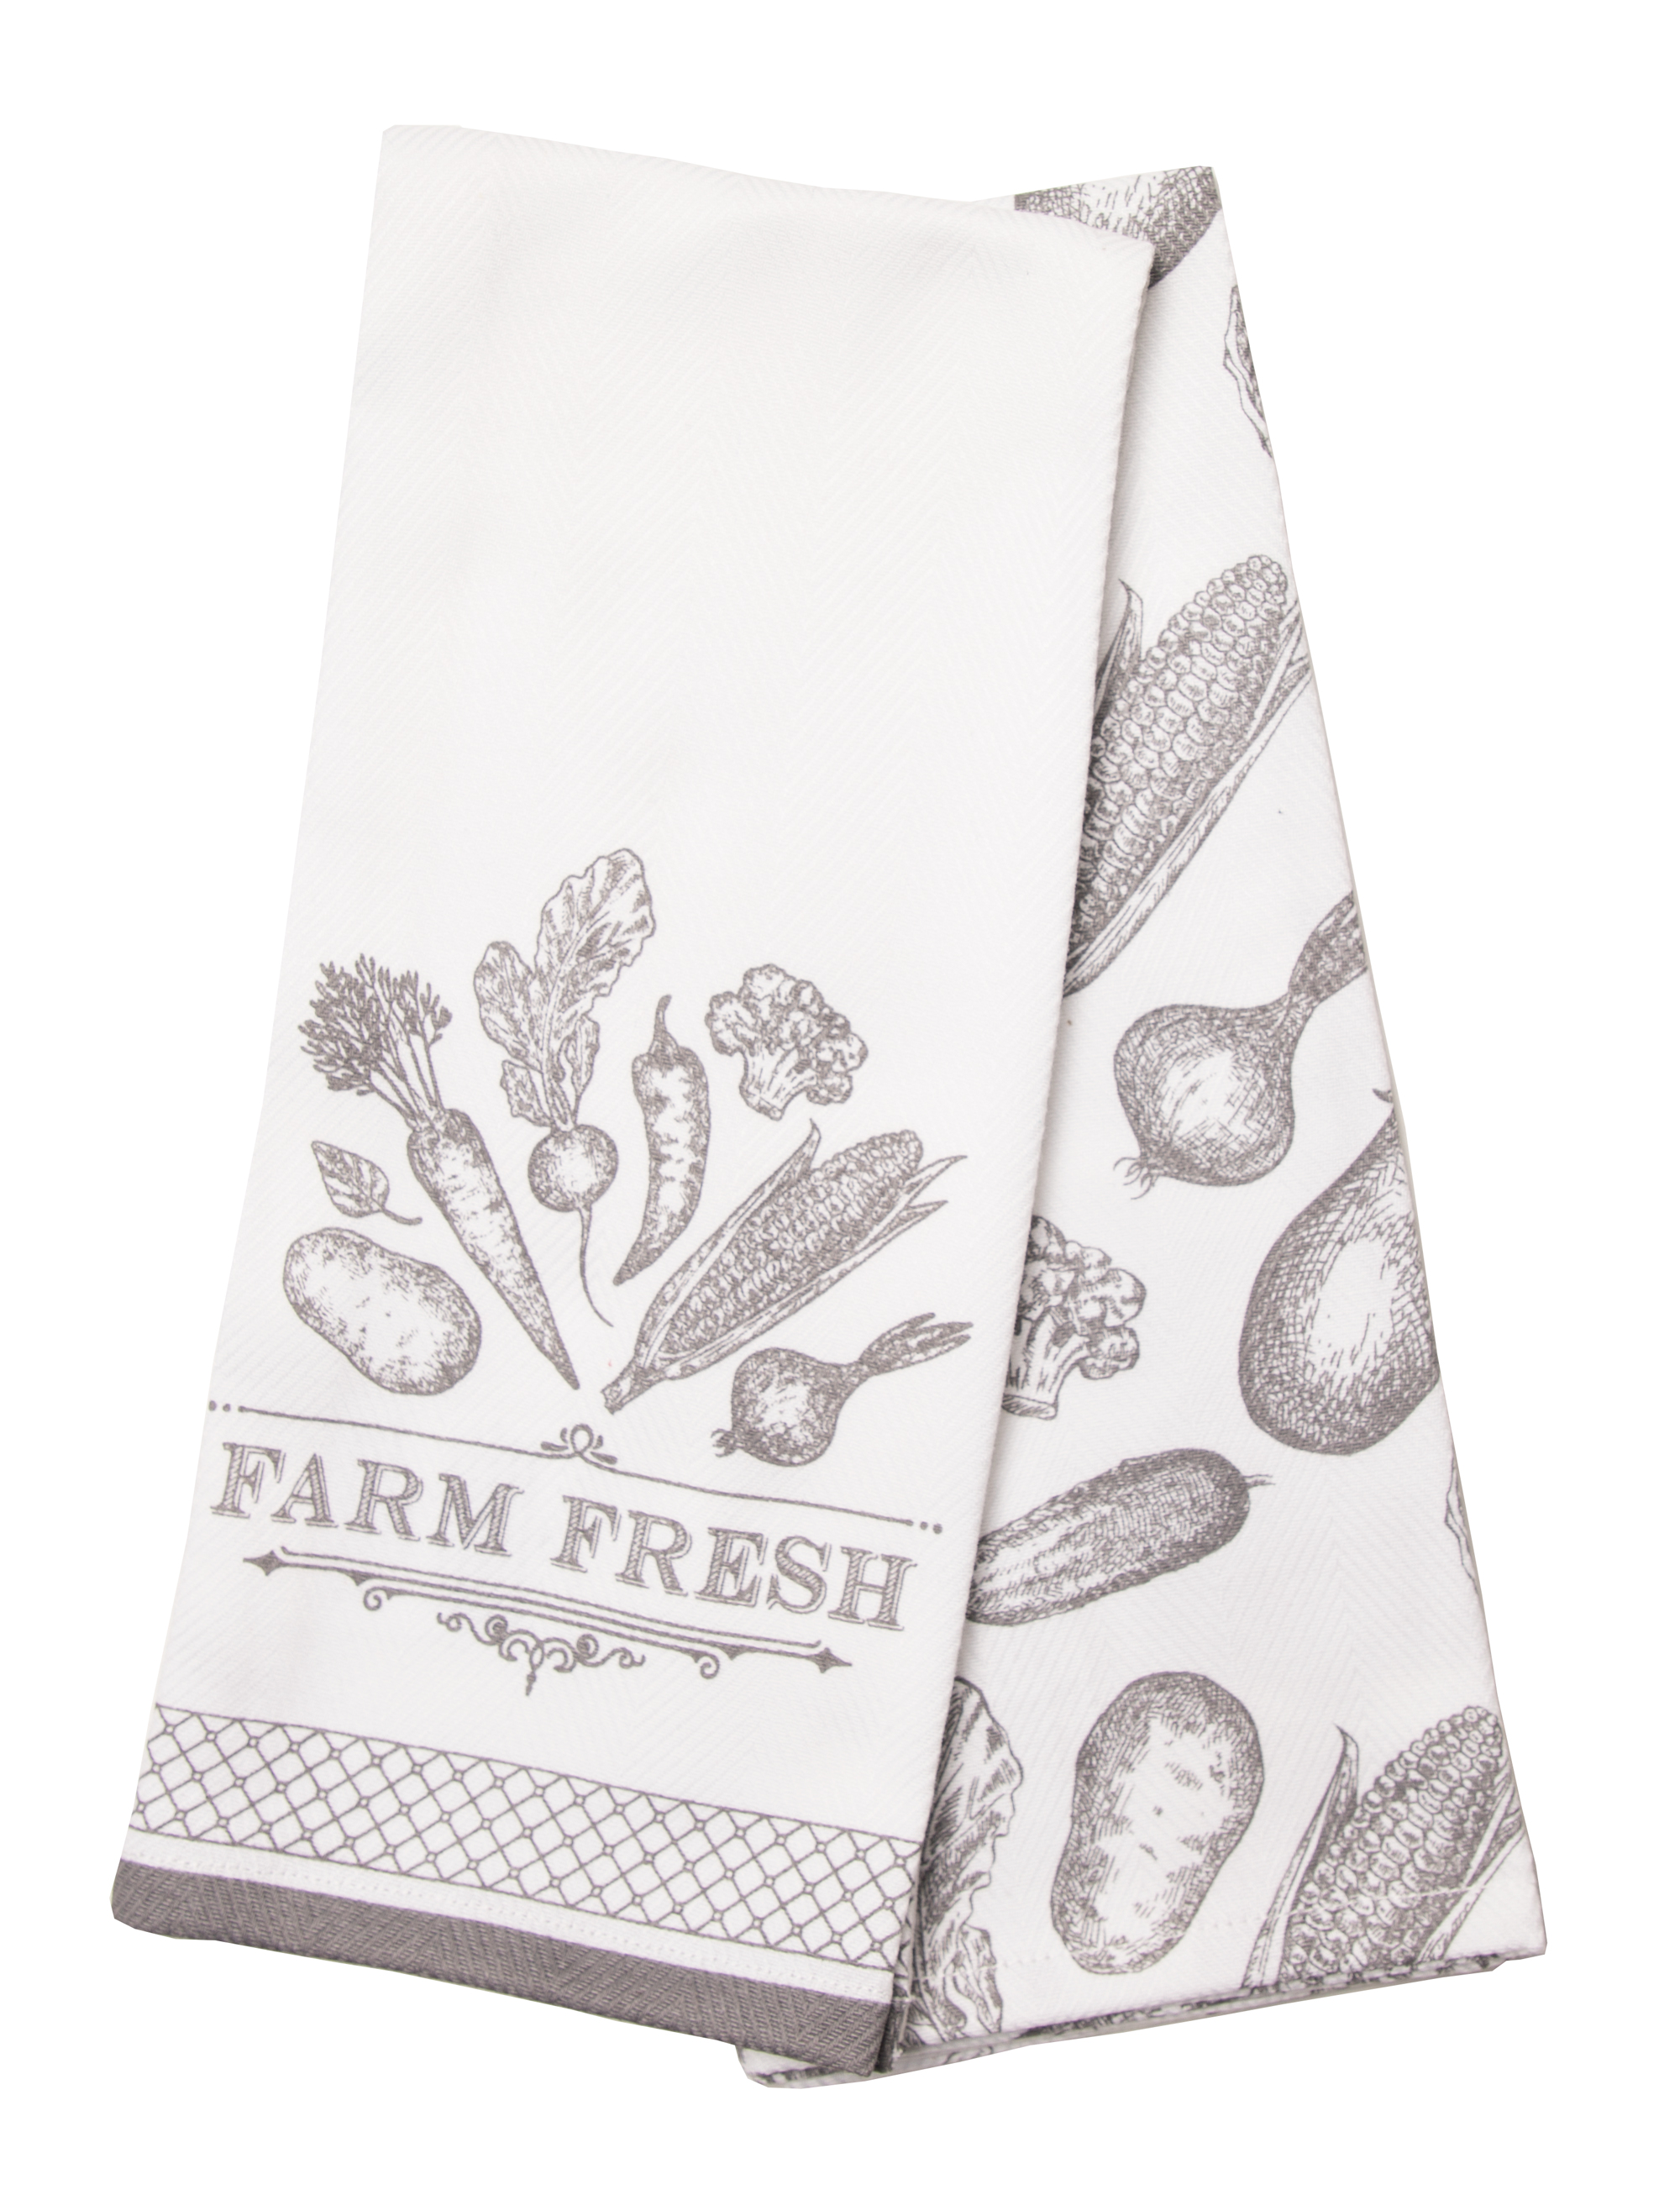 Better Homes & Gardens Veggie Medley Kitchen Towels, Set of 2 by ENVOGUE INTERNATIONAL